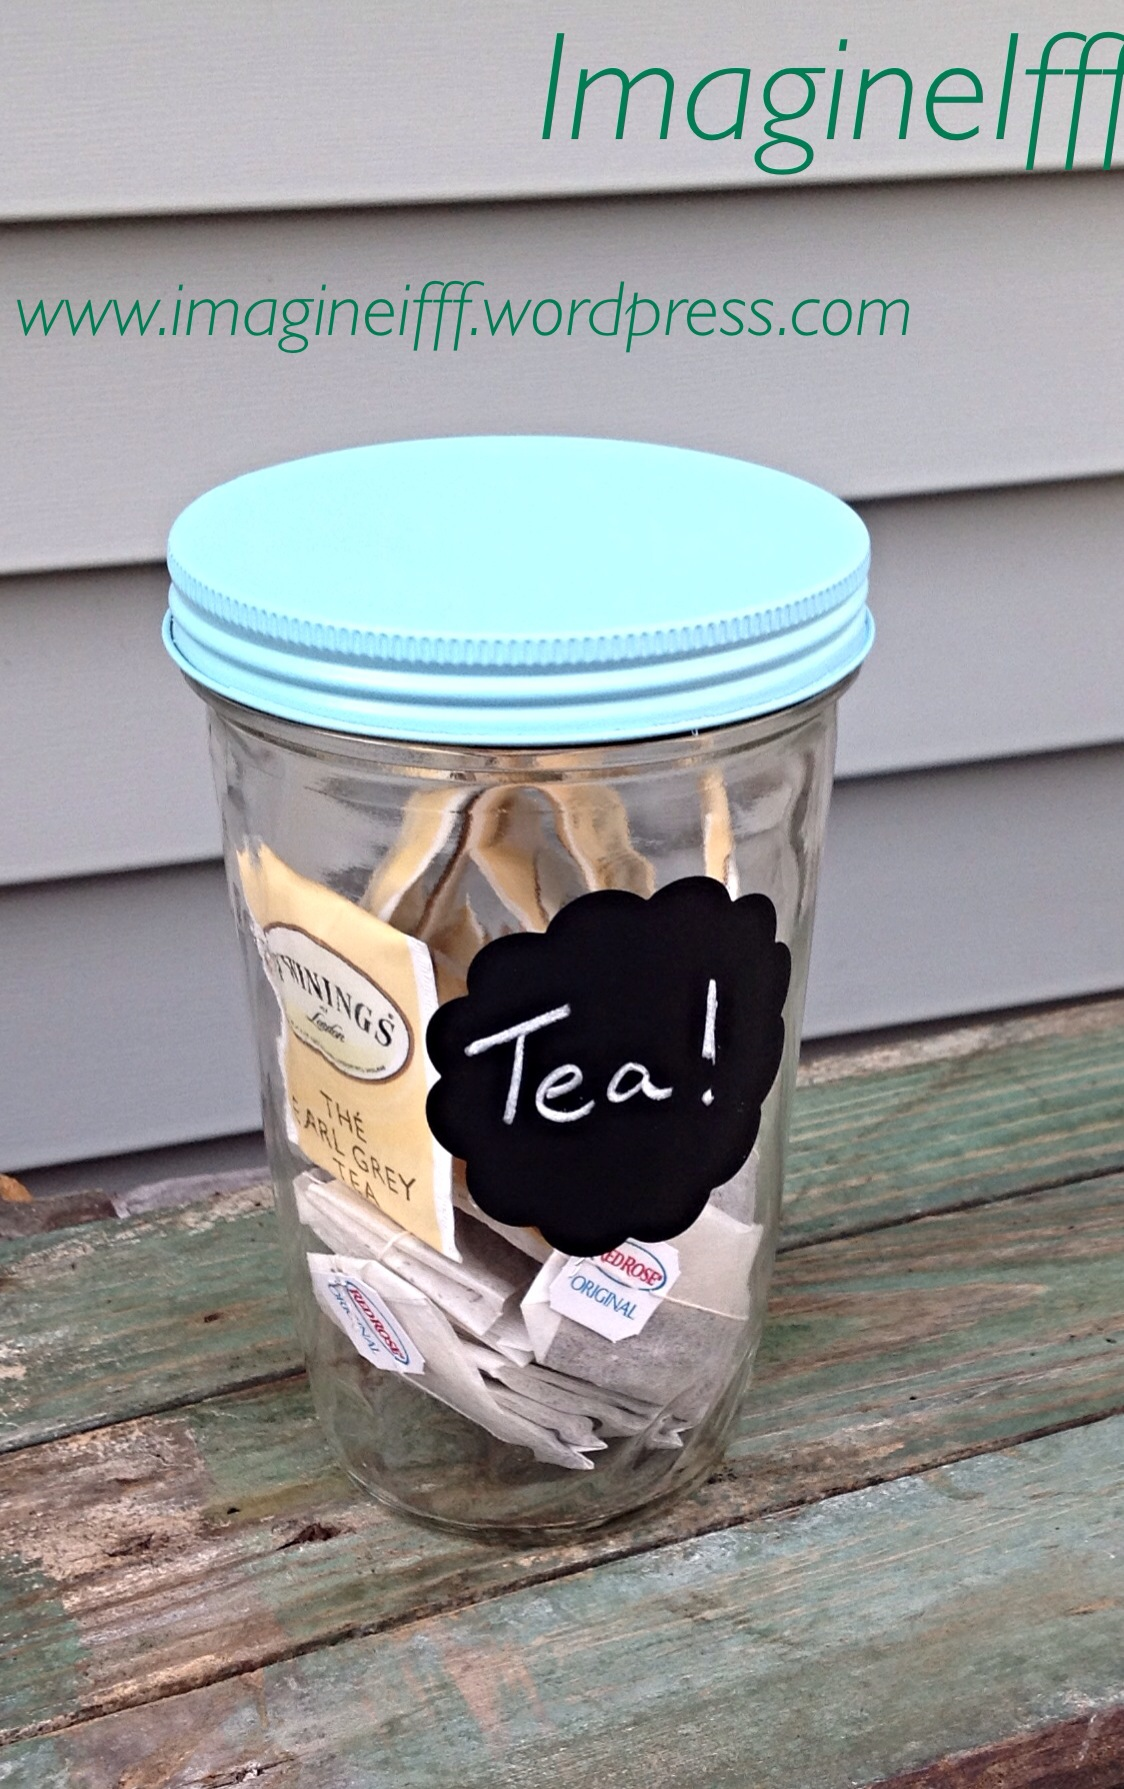 Organize with old glass jars!